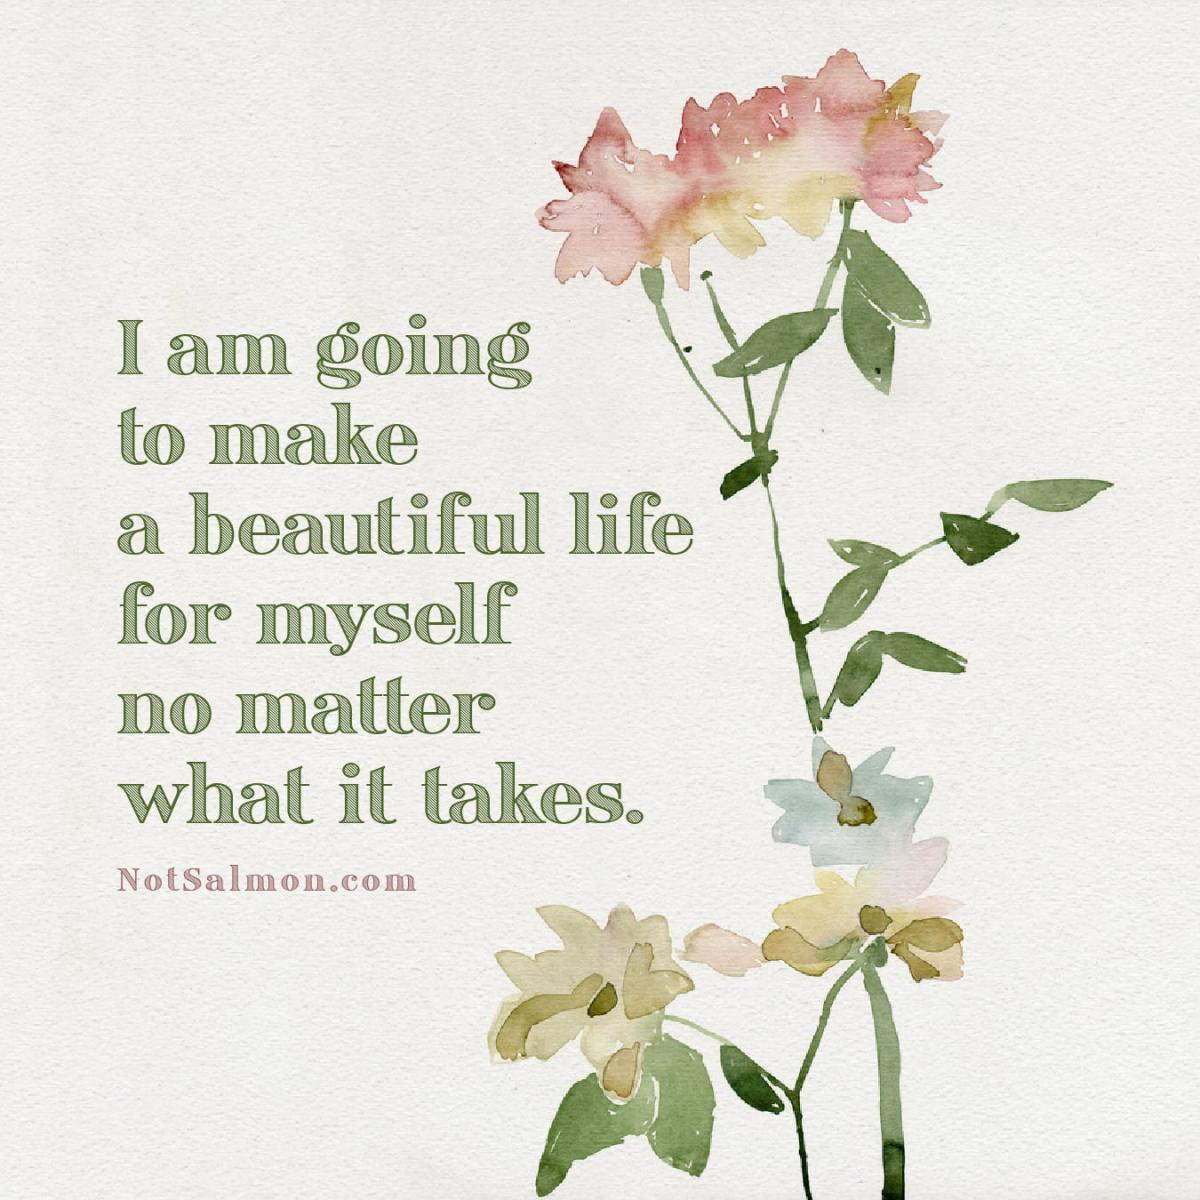 make a beautiful like for myself no matter what it takes